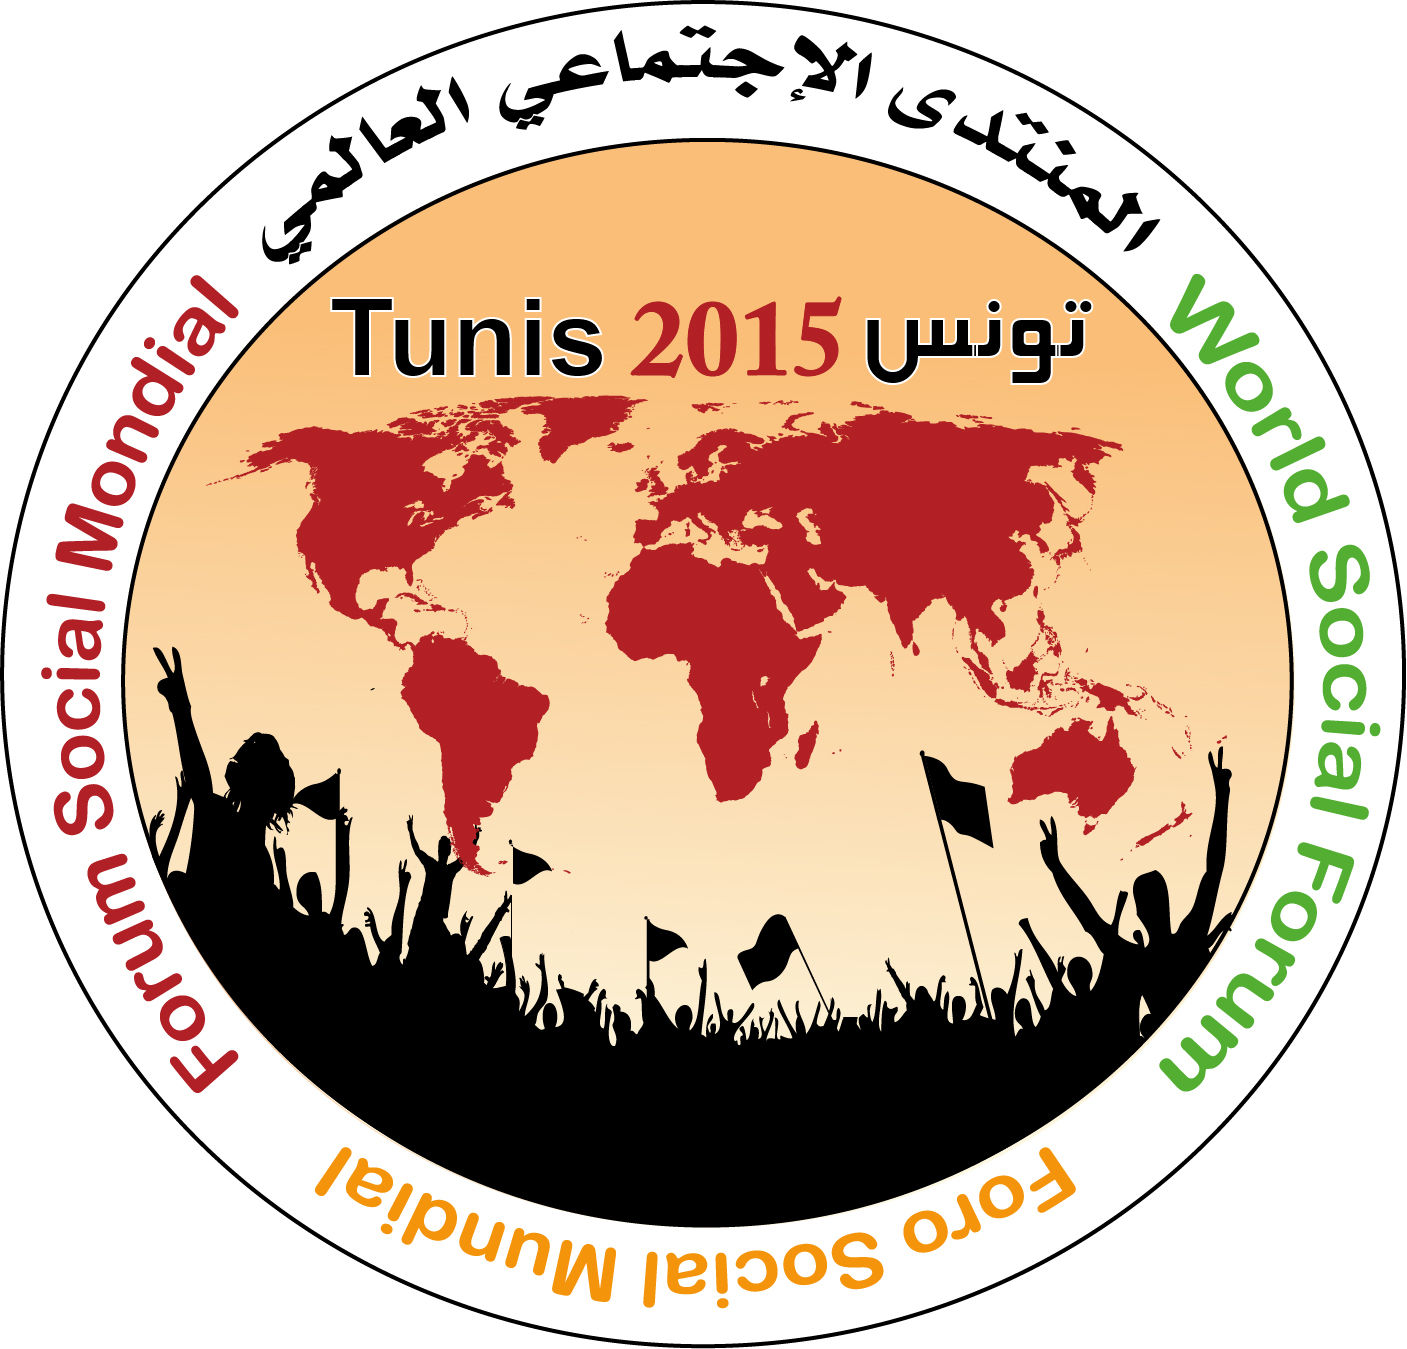 https://fsm2015.org/sites/default/files/logo_fsm_2015.jpg